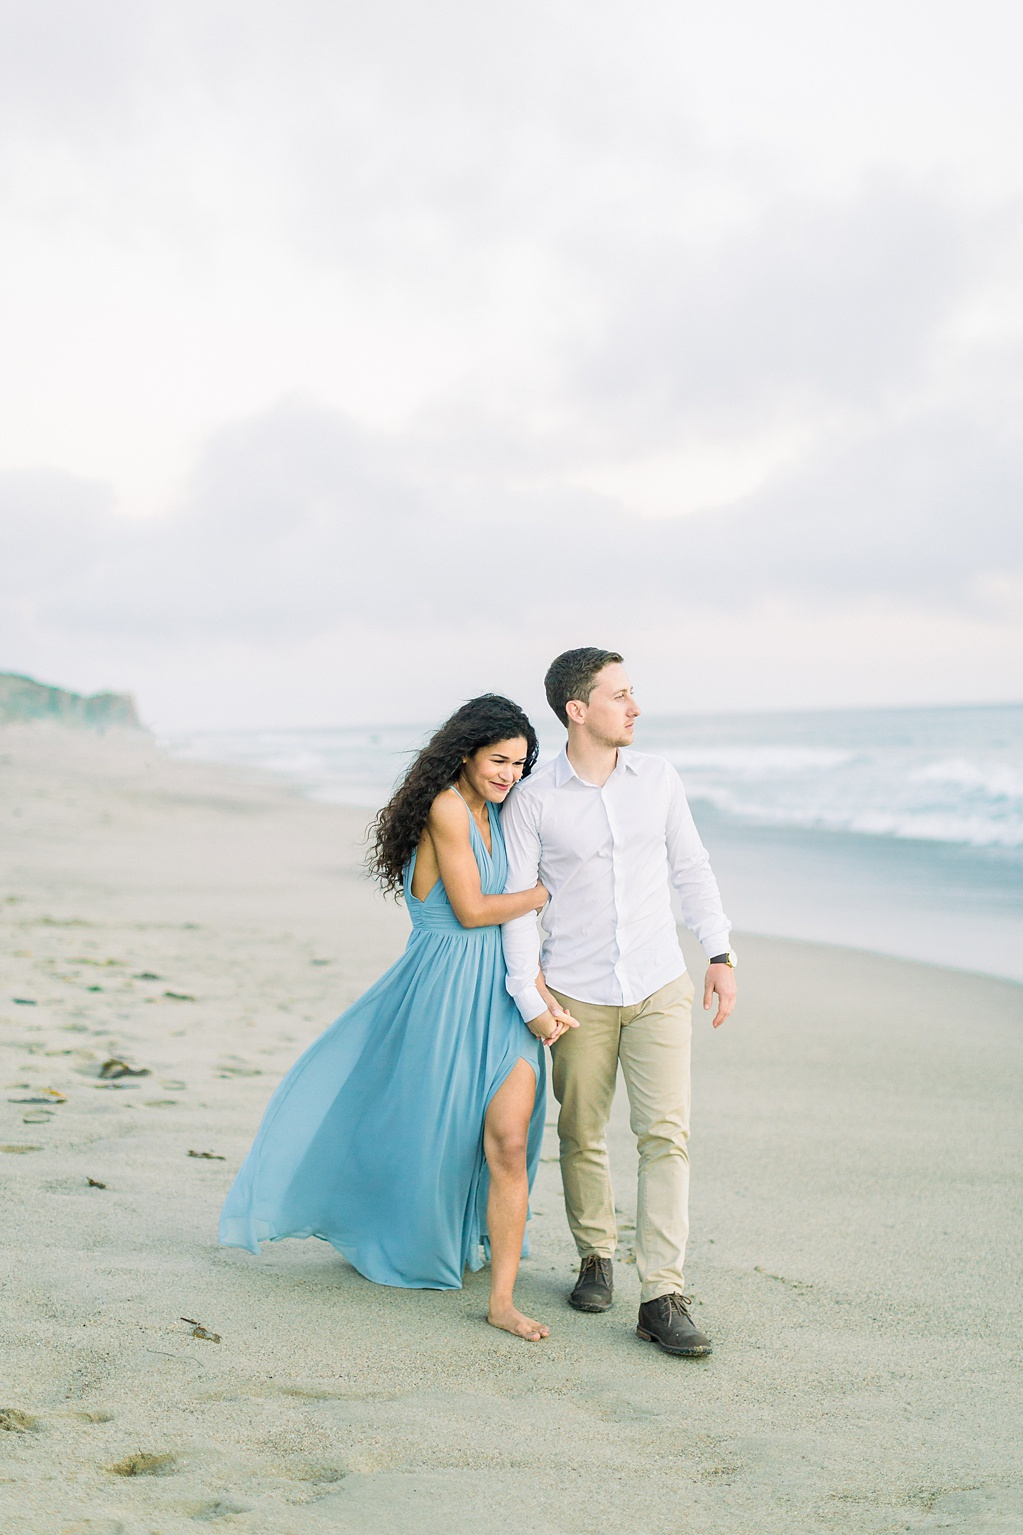 Malibu Cliff Side Engagement Session at Point Dume by Madison Ellis Photography (11)